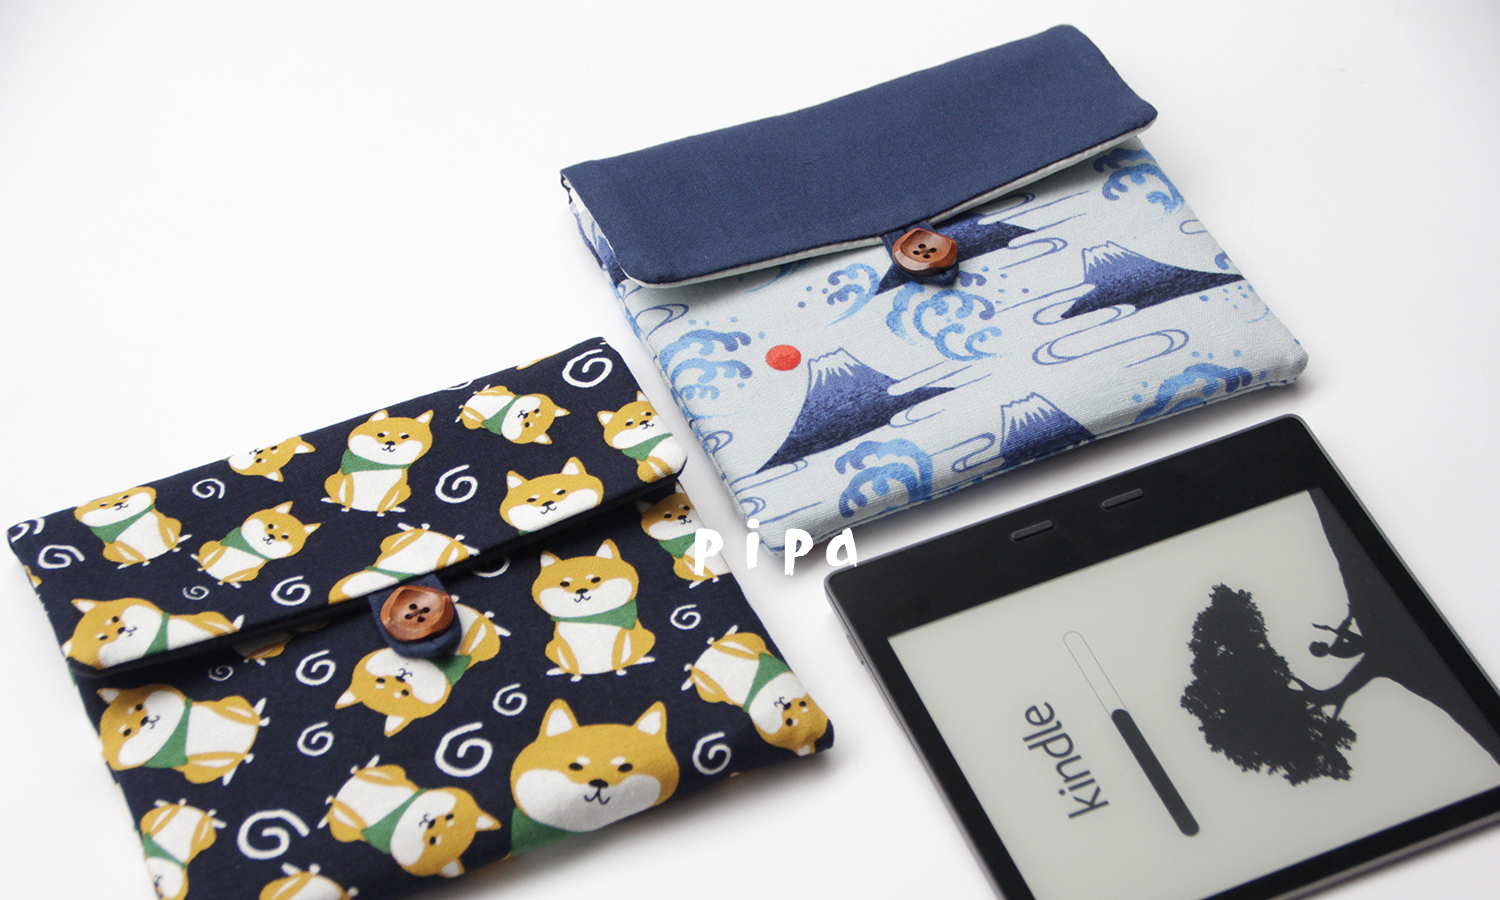 Kindle Oasis 3rd Generation 2nd Generation Cloth Cover Handmade Cloth Bag 67in 10th Generation